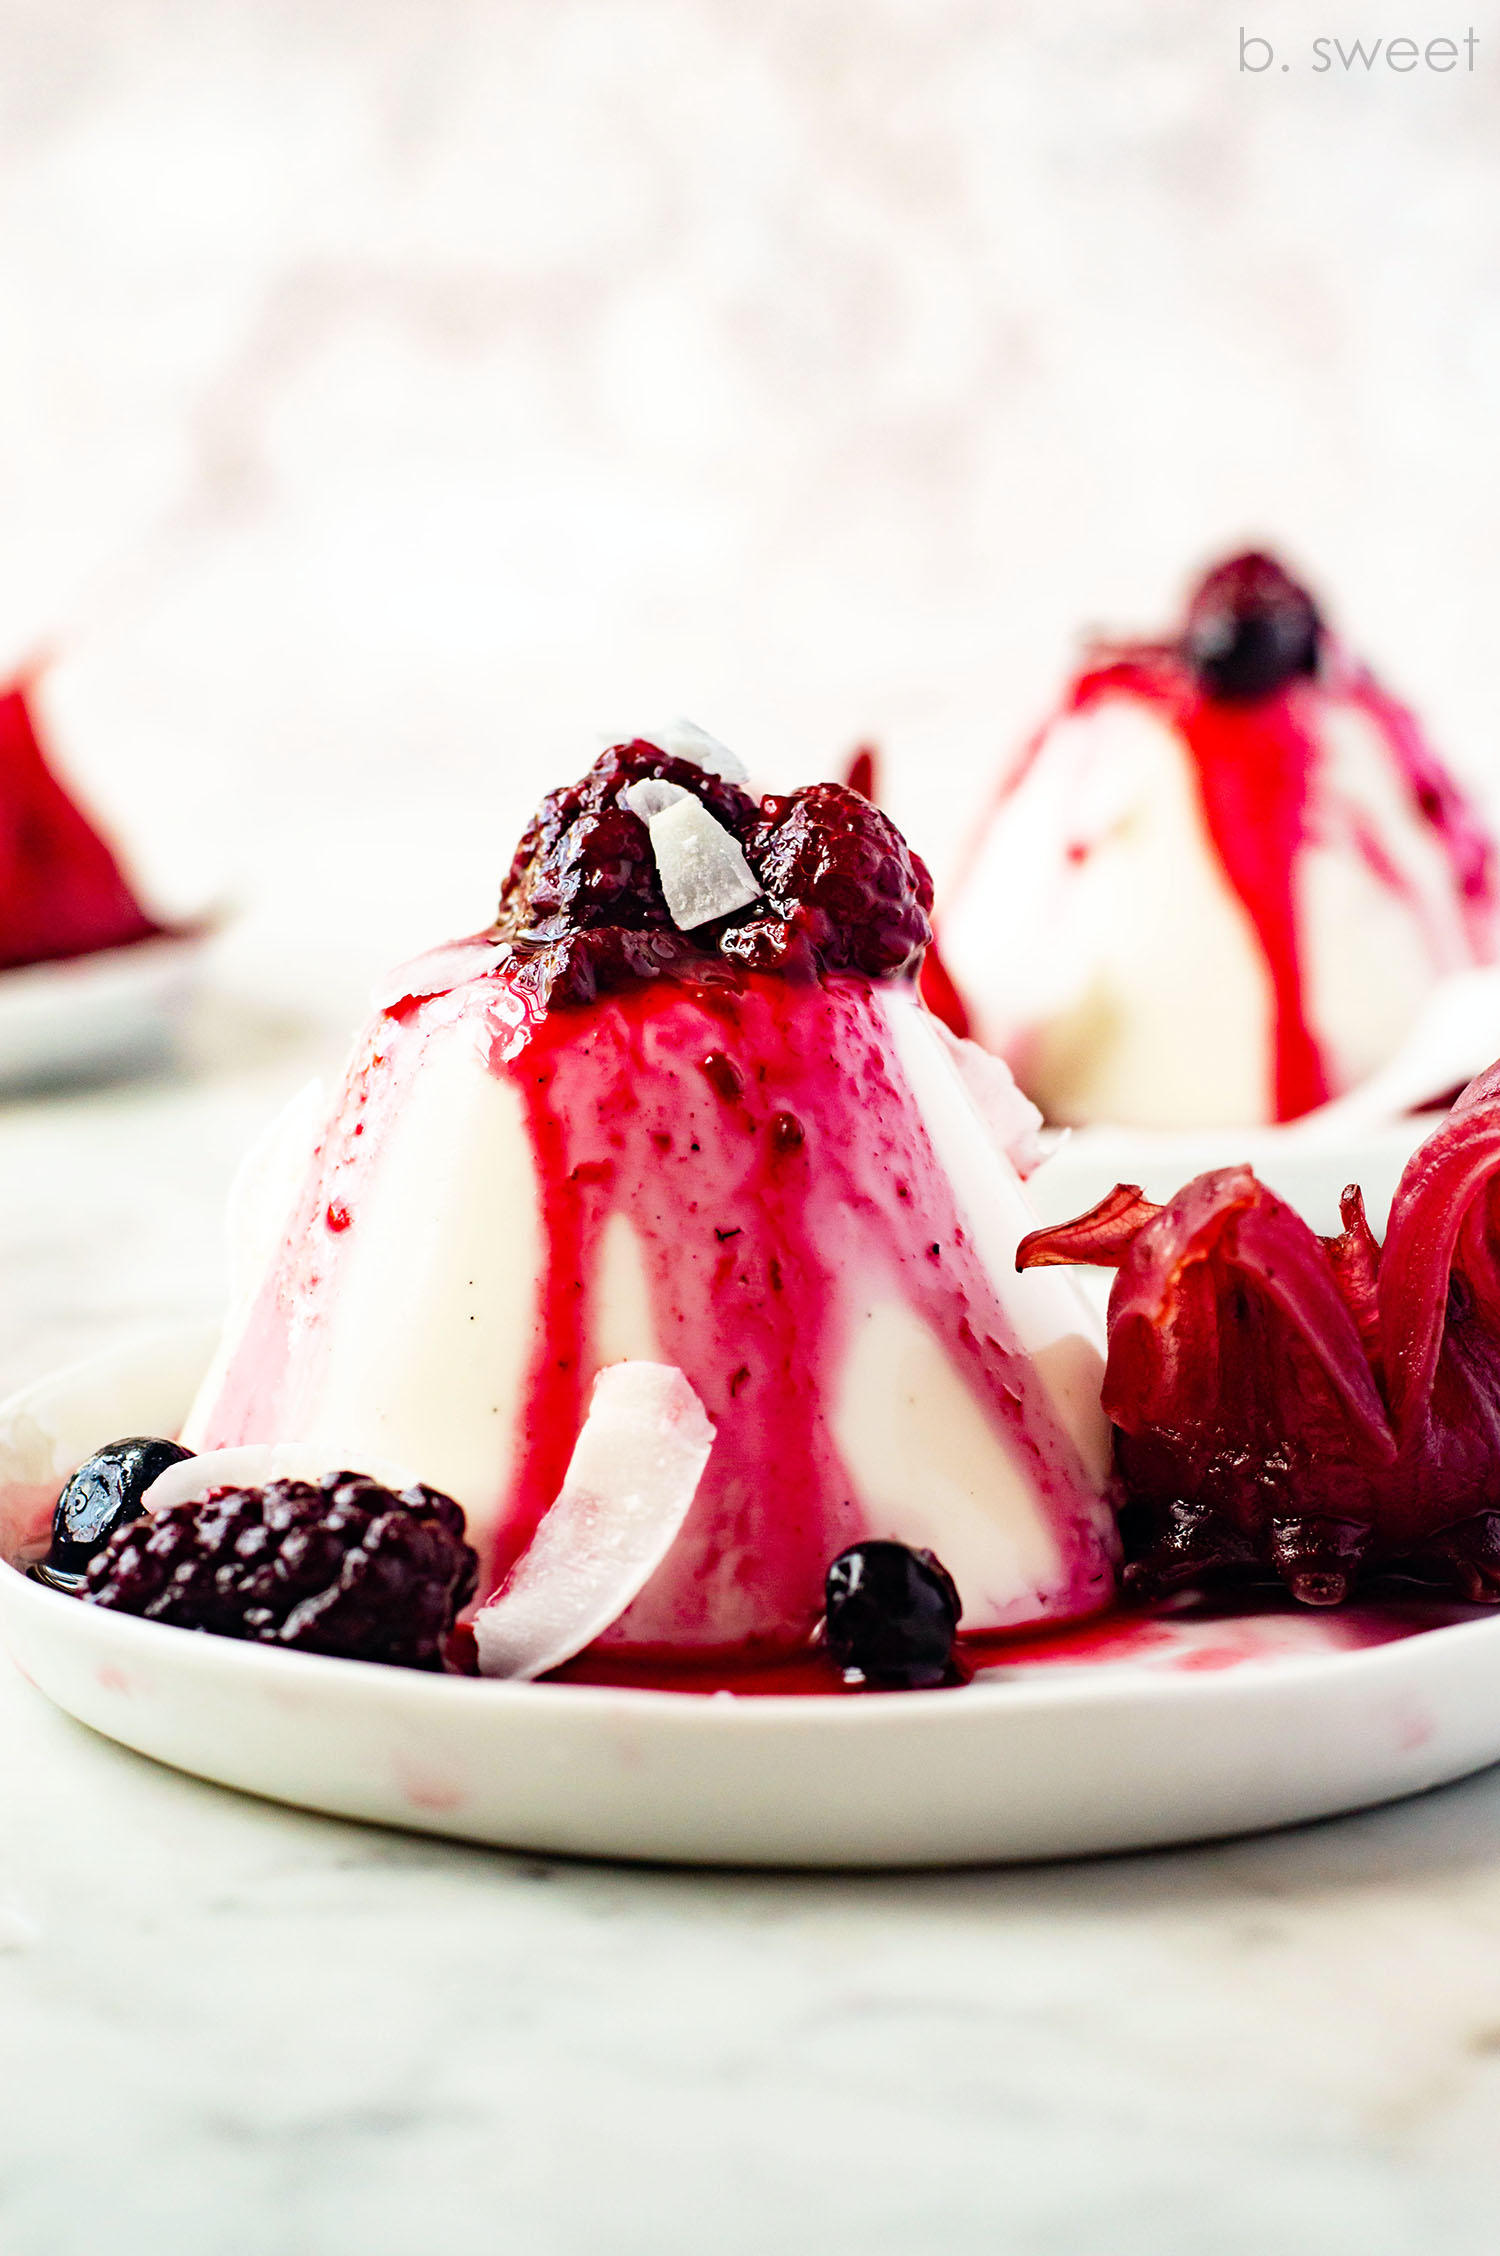 Vanilla Coconut Panna Cotta with Hibiscus Berry Sauce - b. sweet